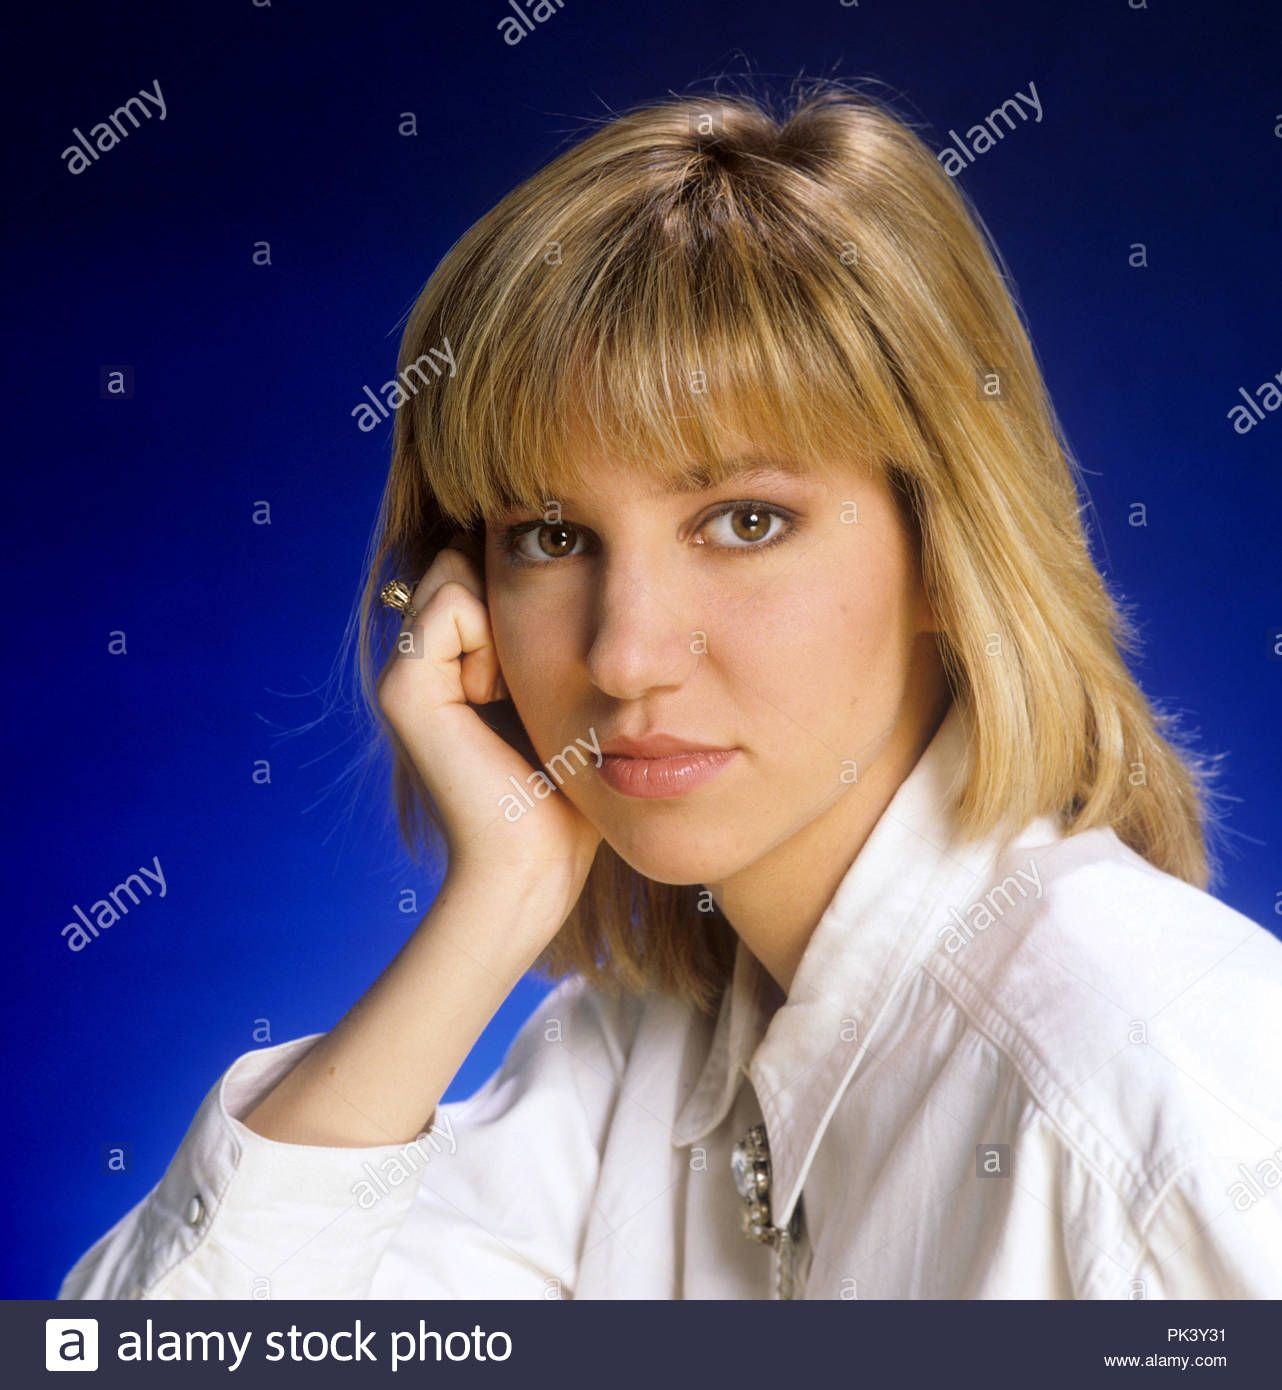 Download this stock image: Debbie Gibson on 19.02.1988 in München / Munich.  | usage worldwide - PK3Y31 from Alamy's library… | Debbie gibson, Women in  music, Debbie